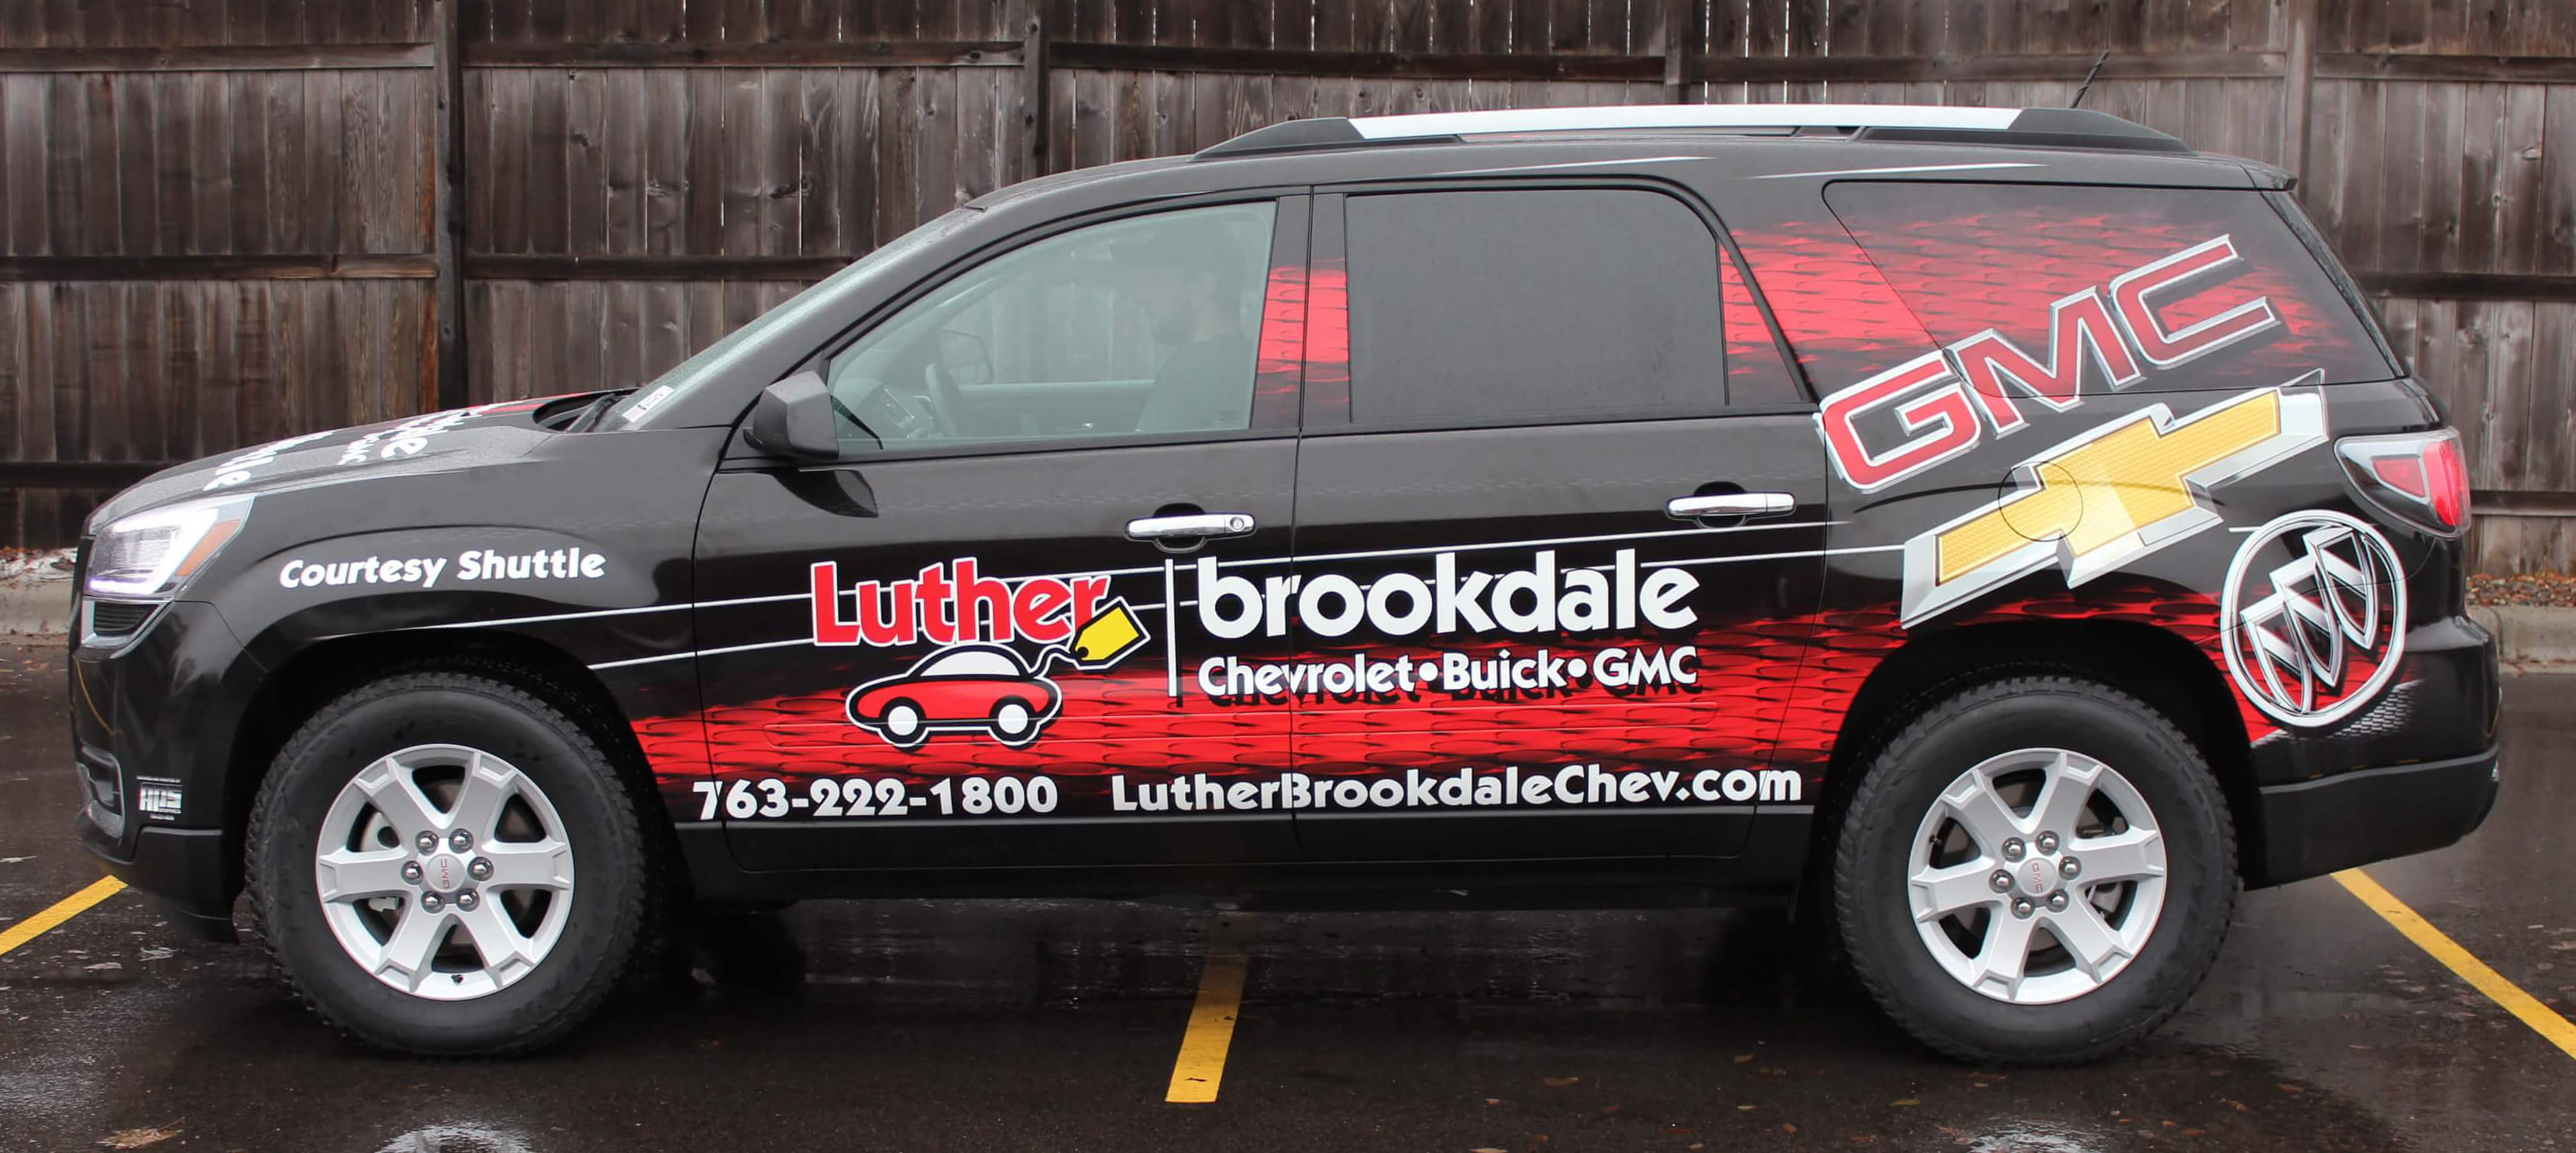 Luther Brookdale Shuttle Vehicle Wrap - Side